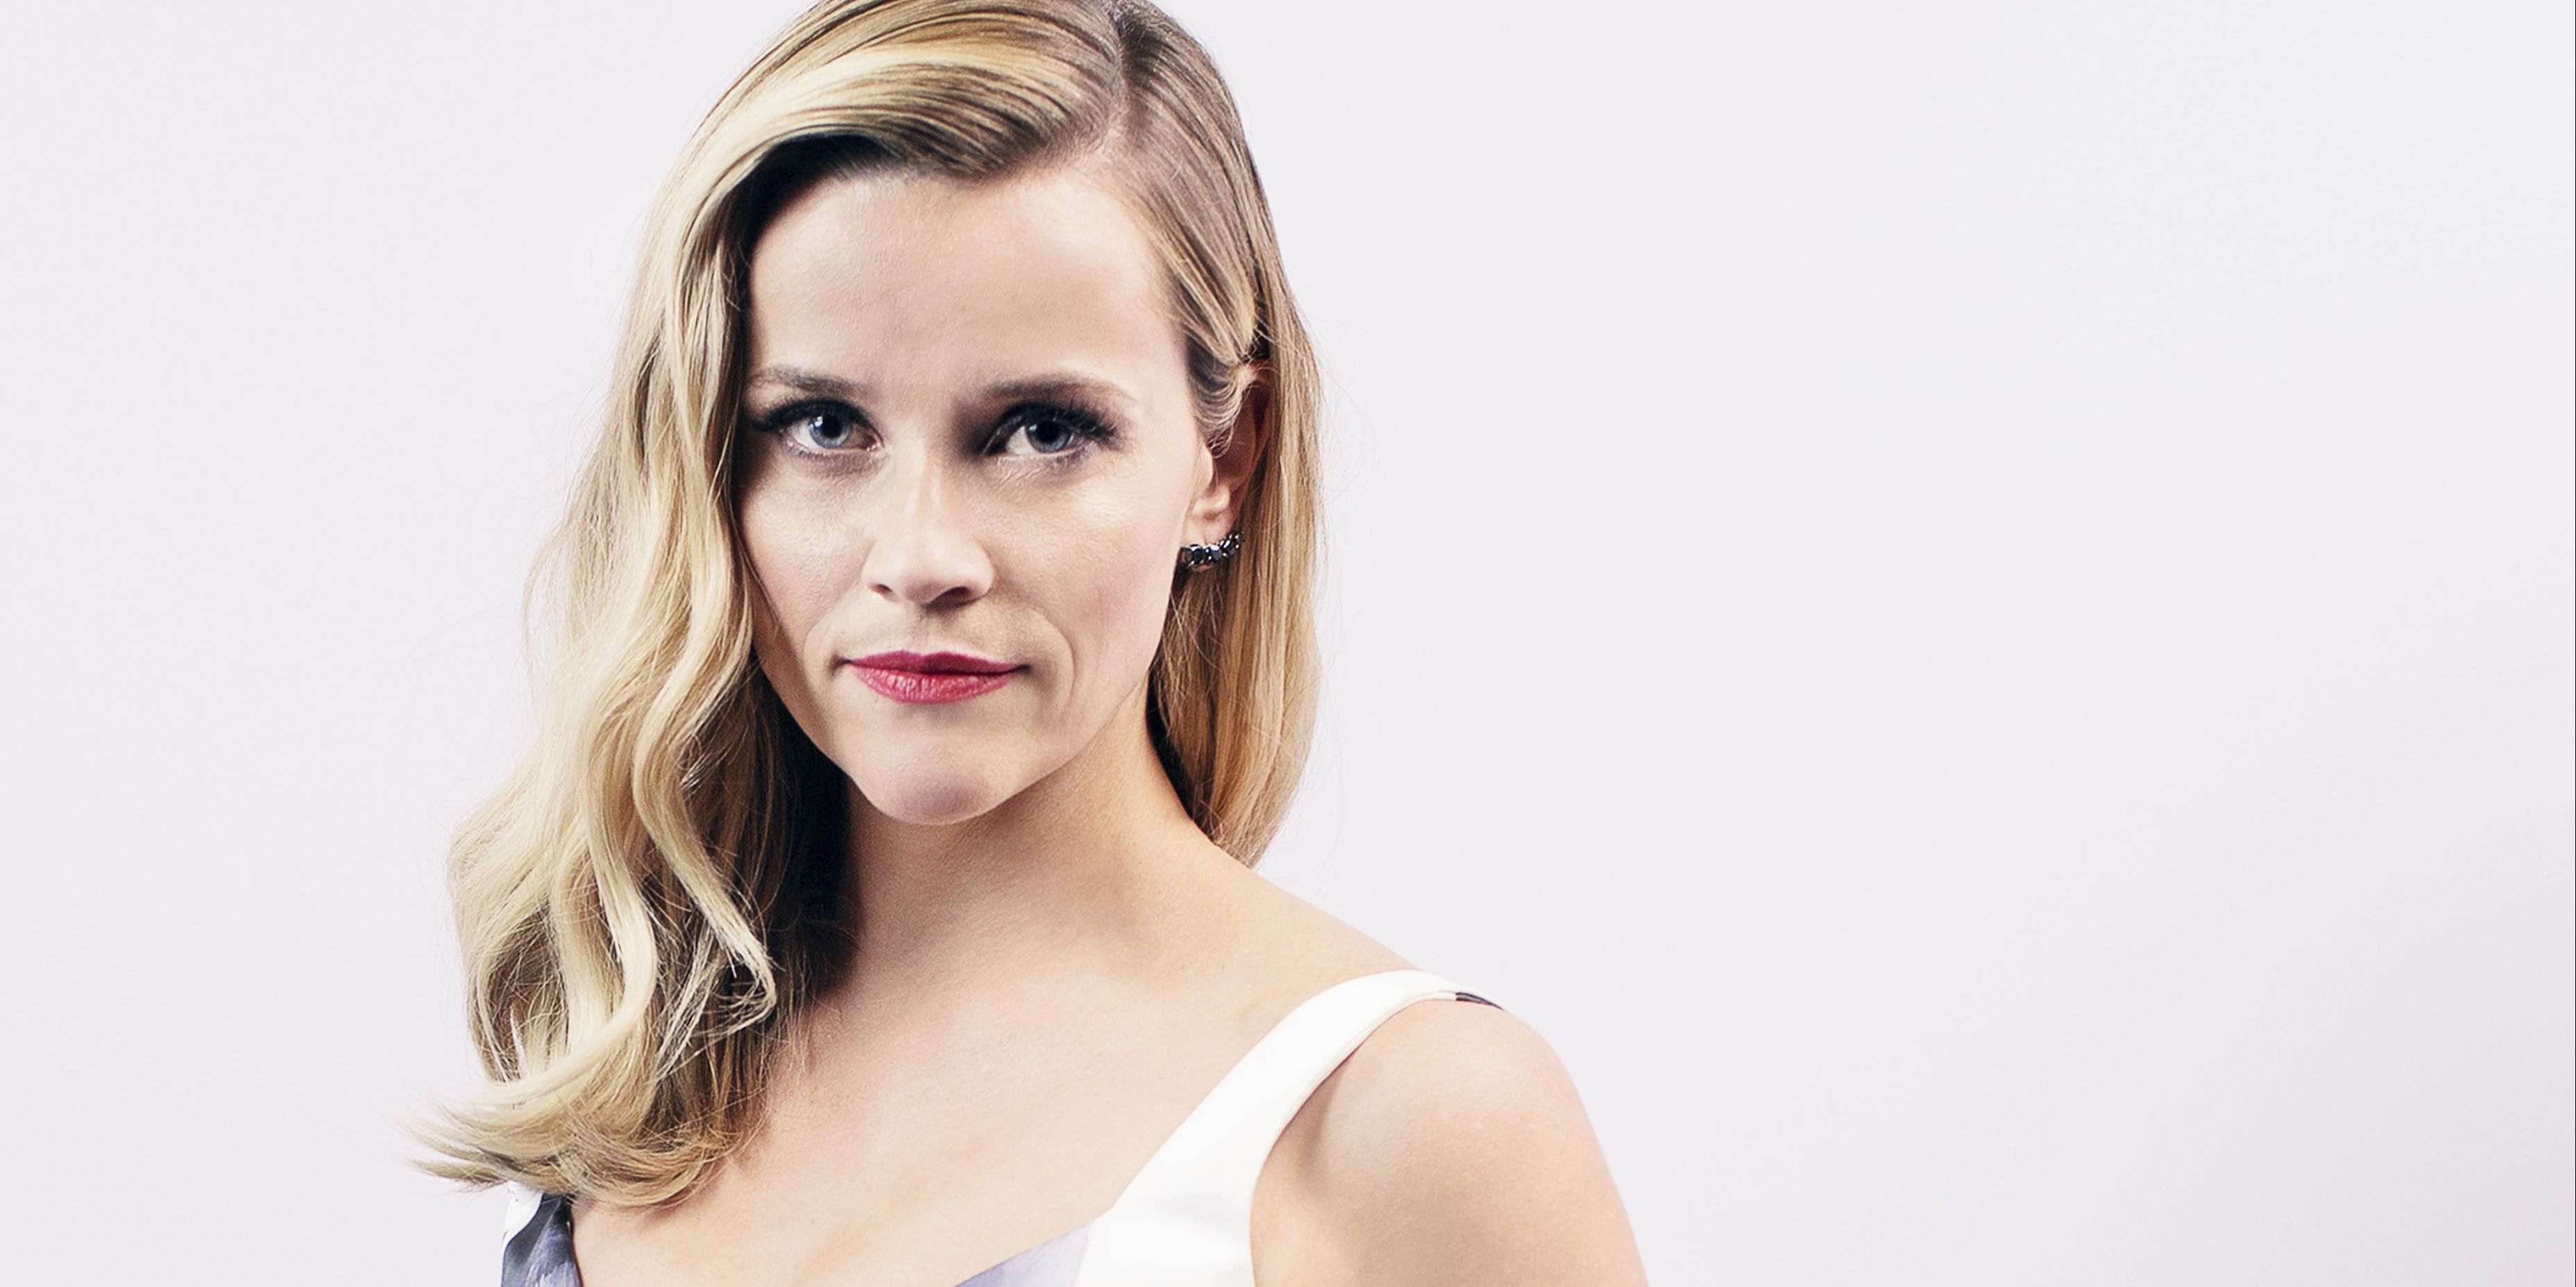 Reese Witherspoon Reveals She Was Assaulted by a Director at 16